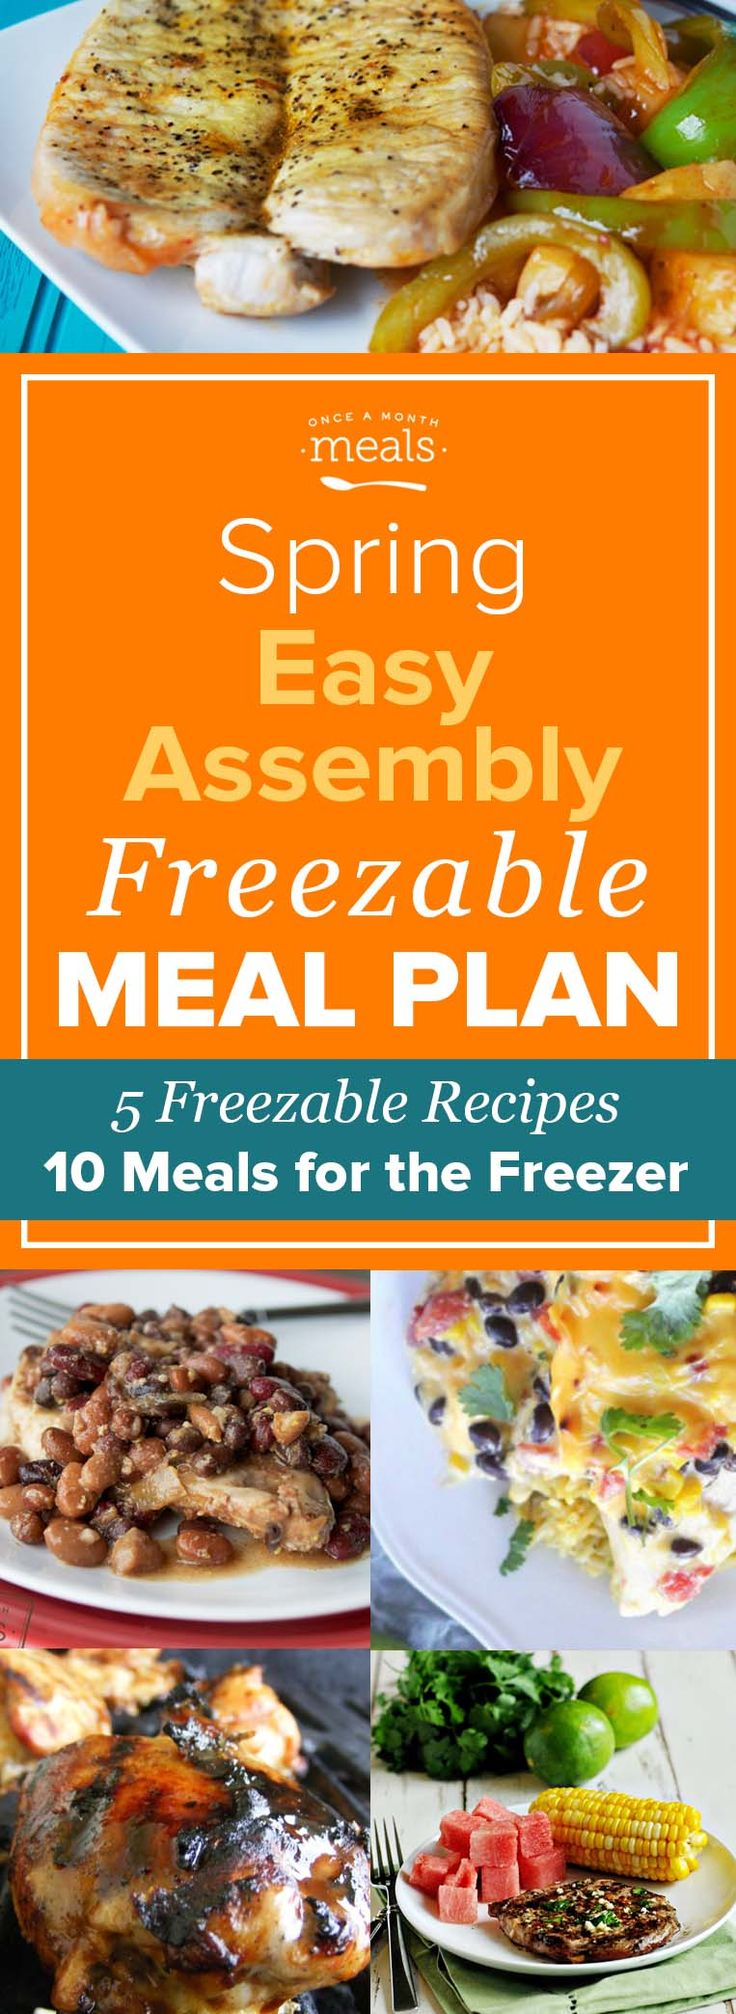 Short on time and low on freezer meals? Use this spring inspired Easy Assembly Mini Menu to stock up on some scrumptiously simple dinners. From sweet and sour pork chops to slow cooked southwestern chicken, bright flavors and bold tastes await your family table.